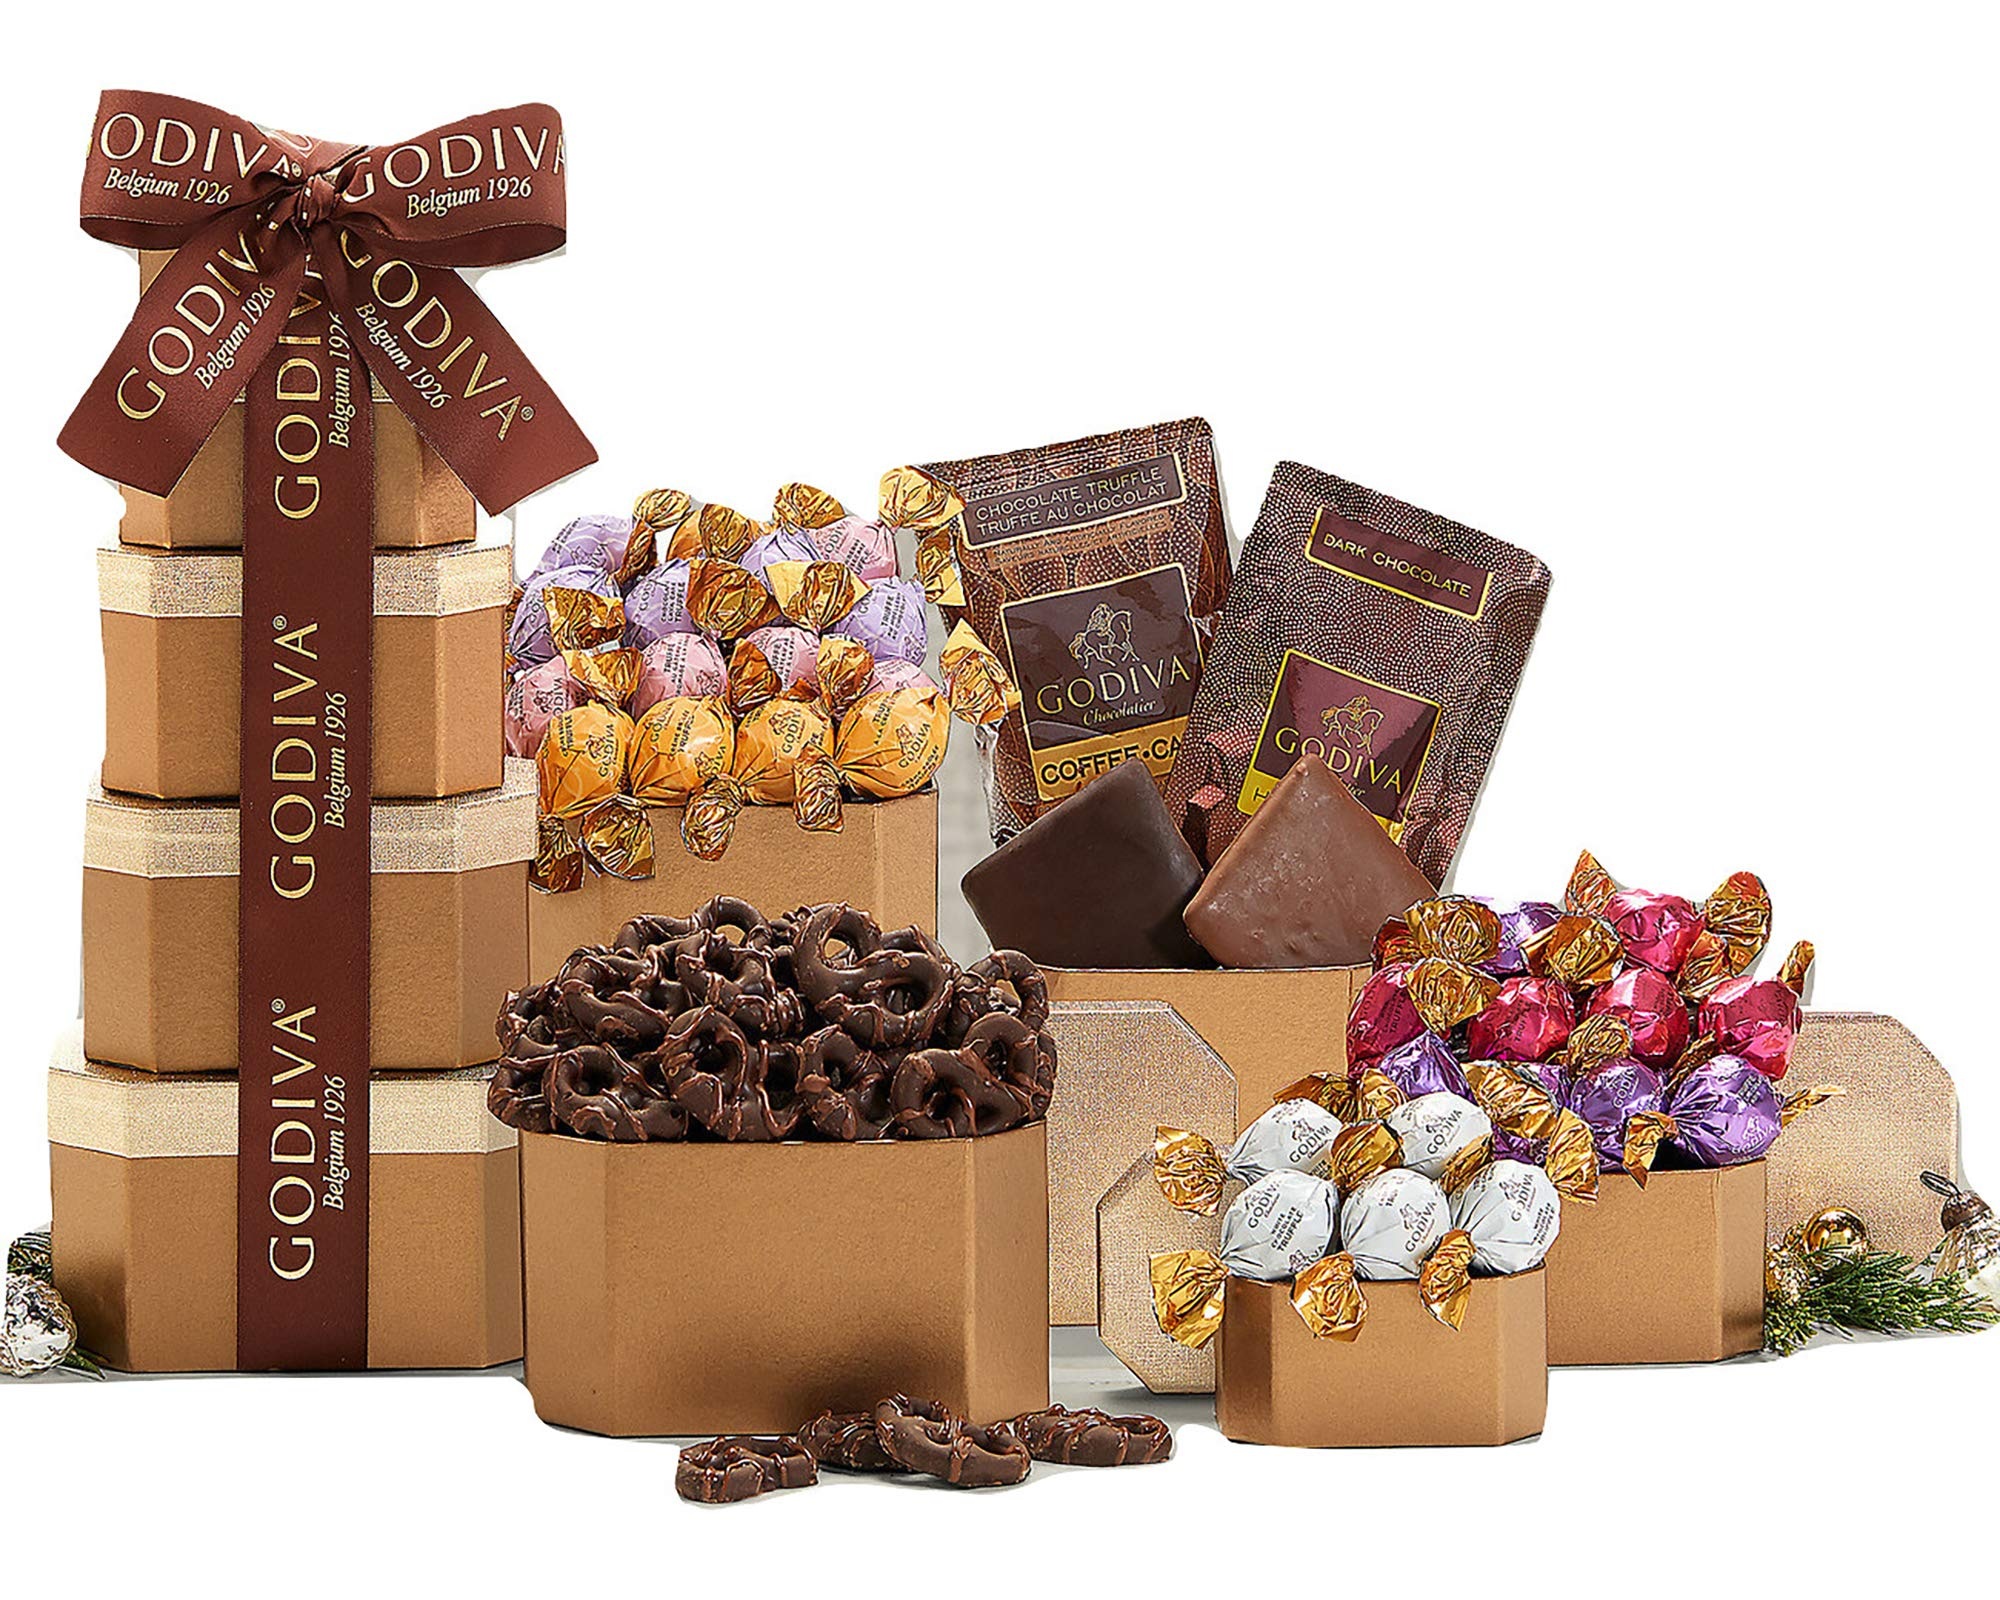 Remarkable Gift Co. Special Godiva Chocolate Gift Tower by Remarkable Gift Co.